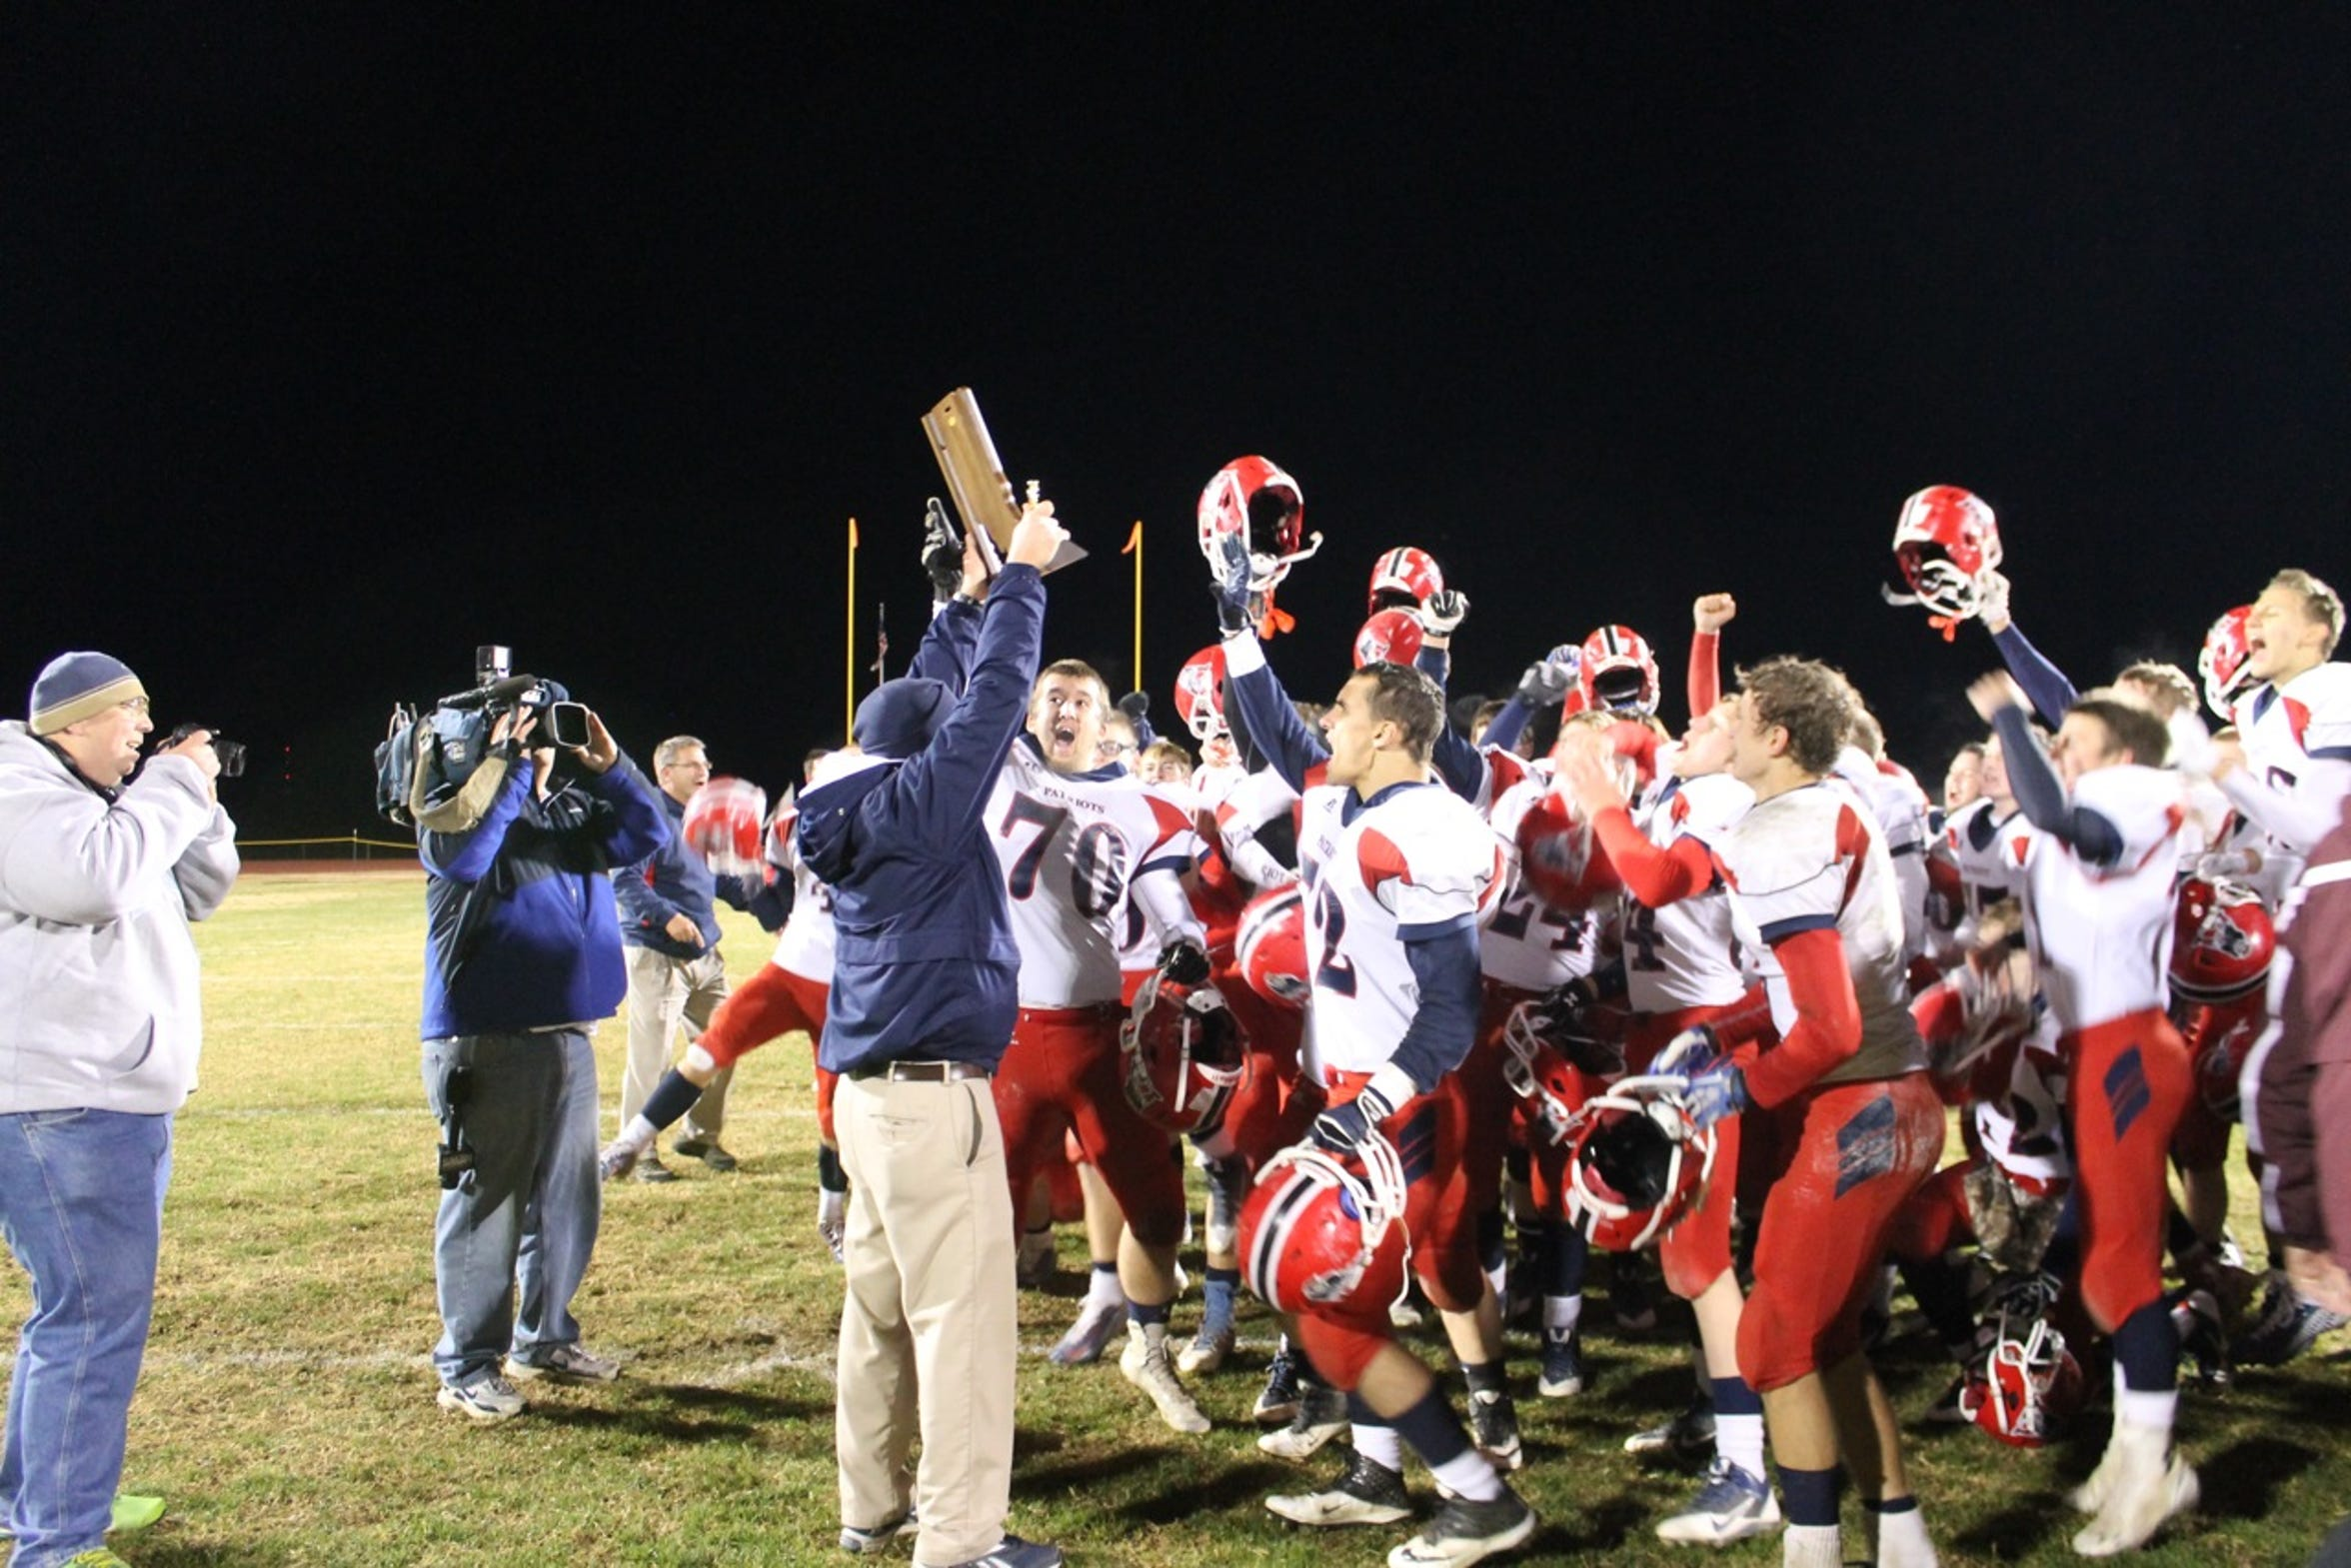 Heritage Hills football coach Todd Wilkerson hoists a sectional championship trophy after his team beat Gibson Southern, 14-13, on Nov. 7, 2014 in Fort Branch, Ind.